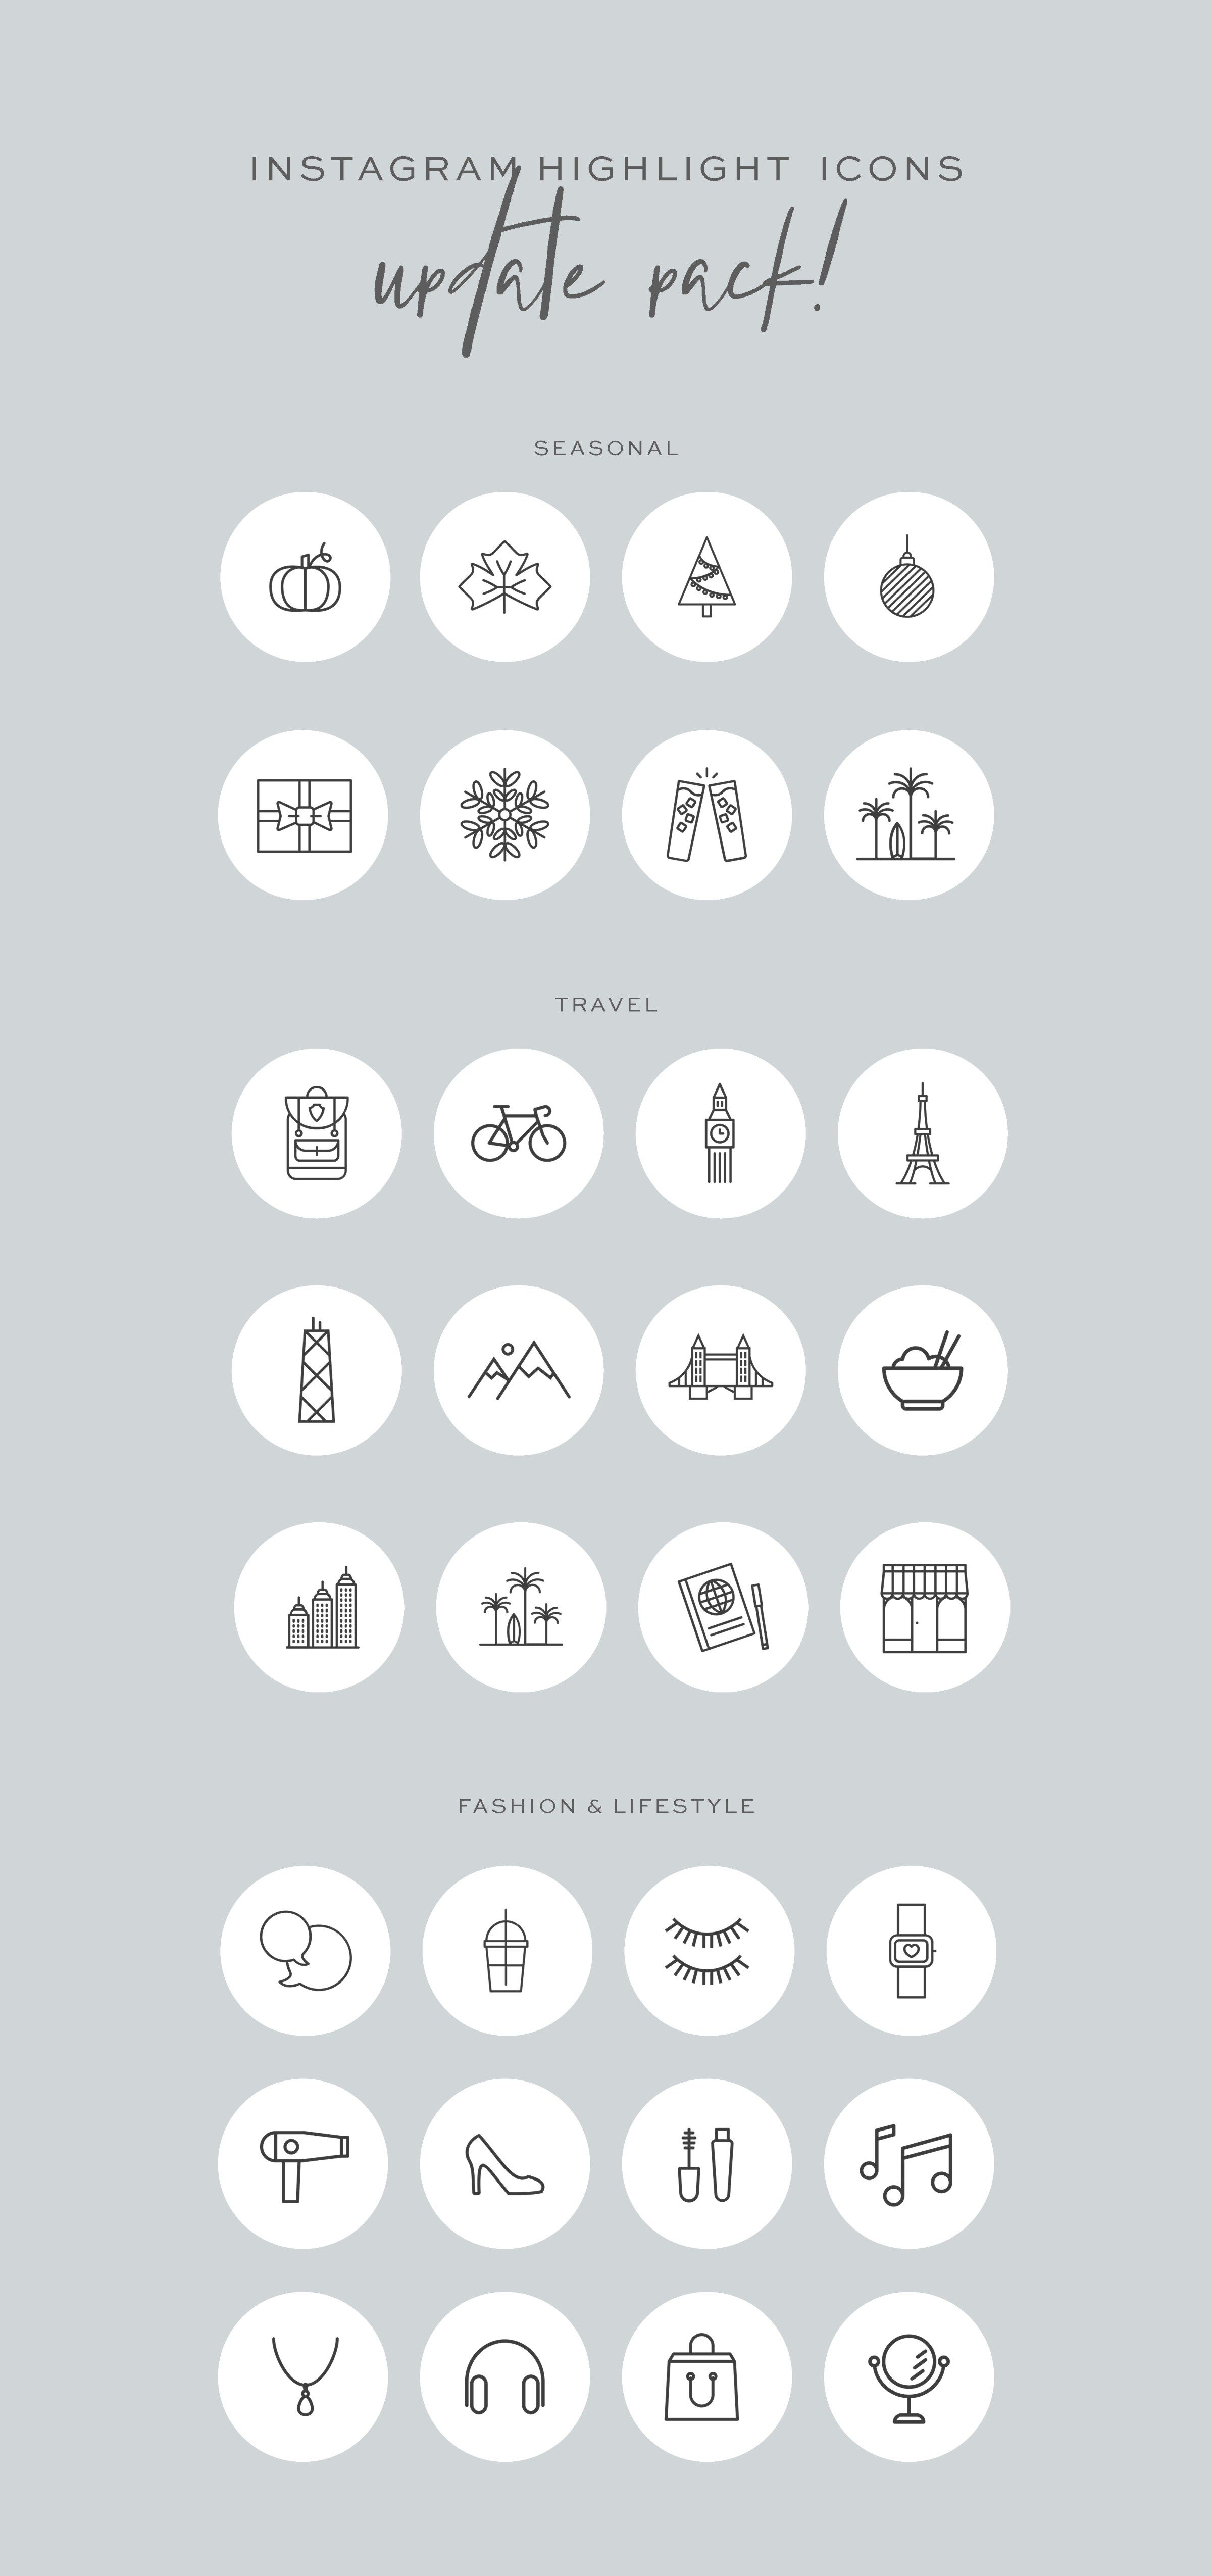 Instagram Highlight Cover Icons - Master Pack